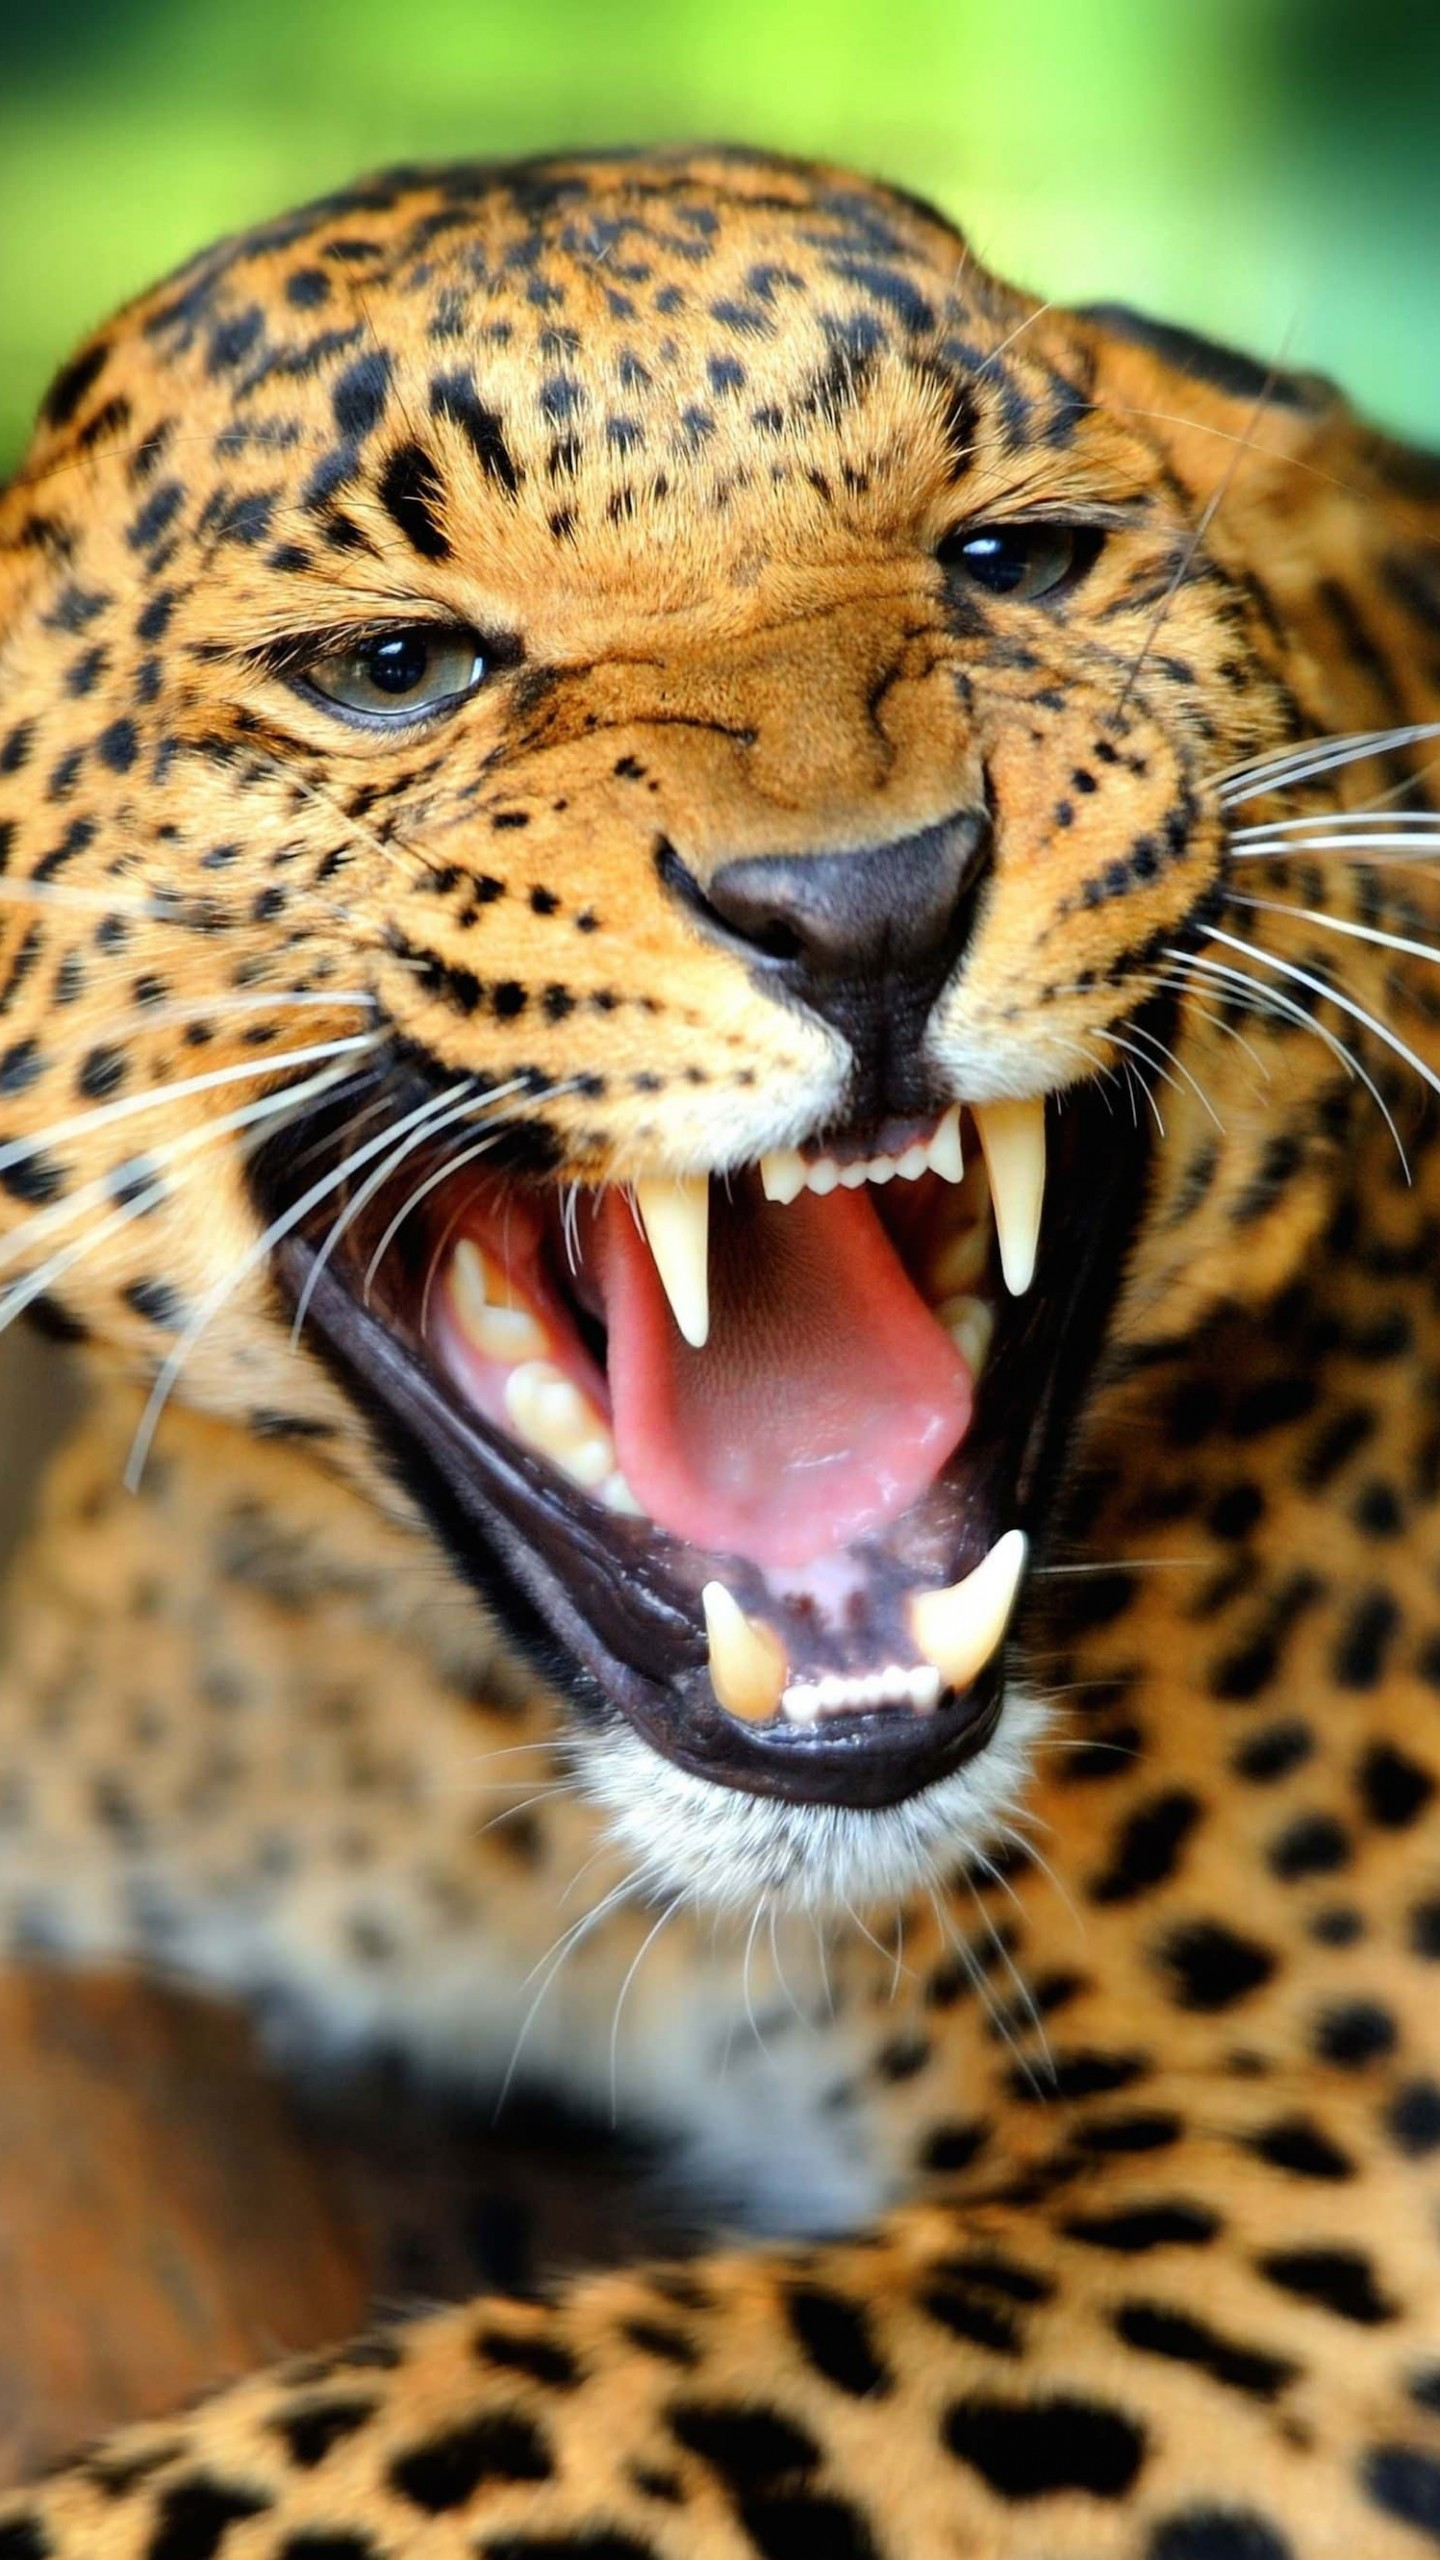 Growling Leopard Wallpaper for LG G3